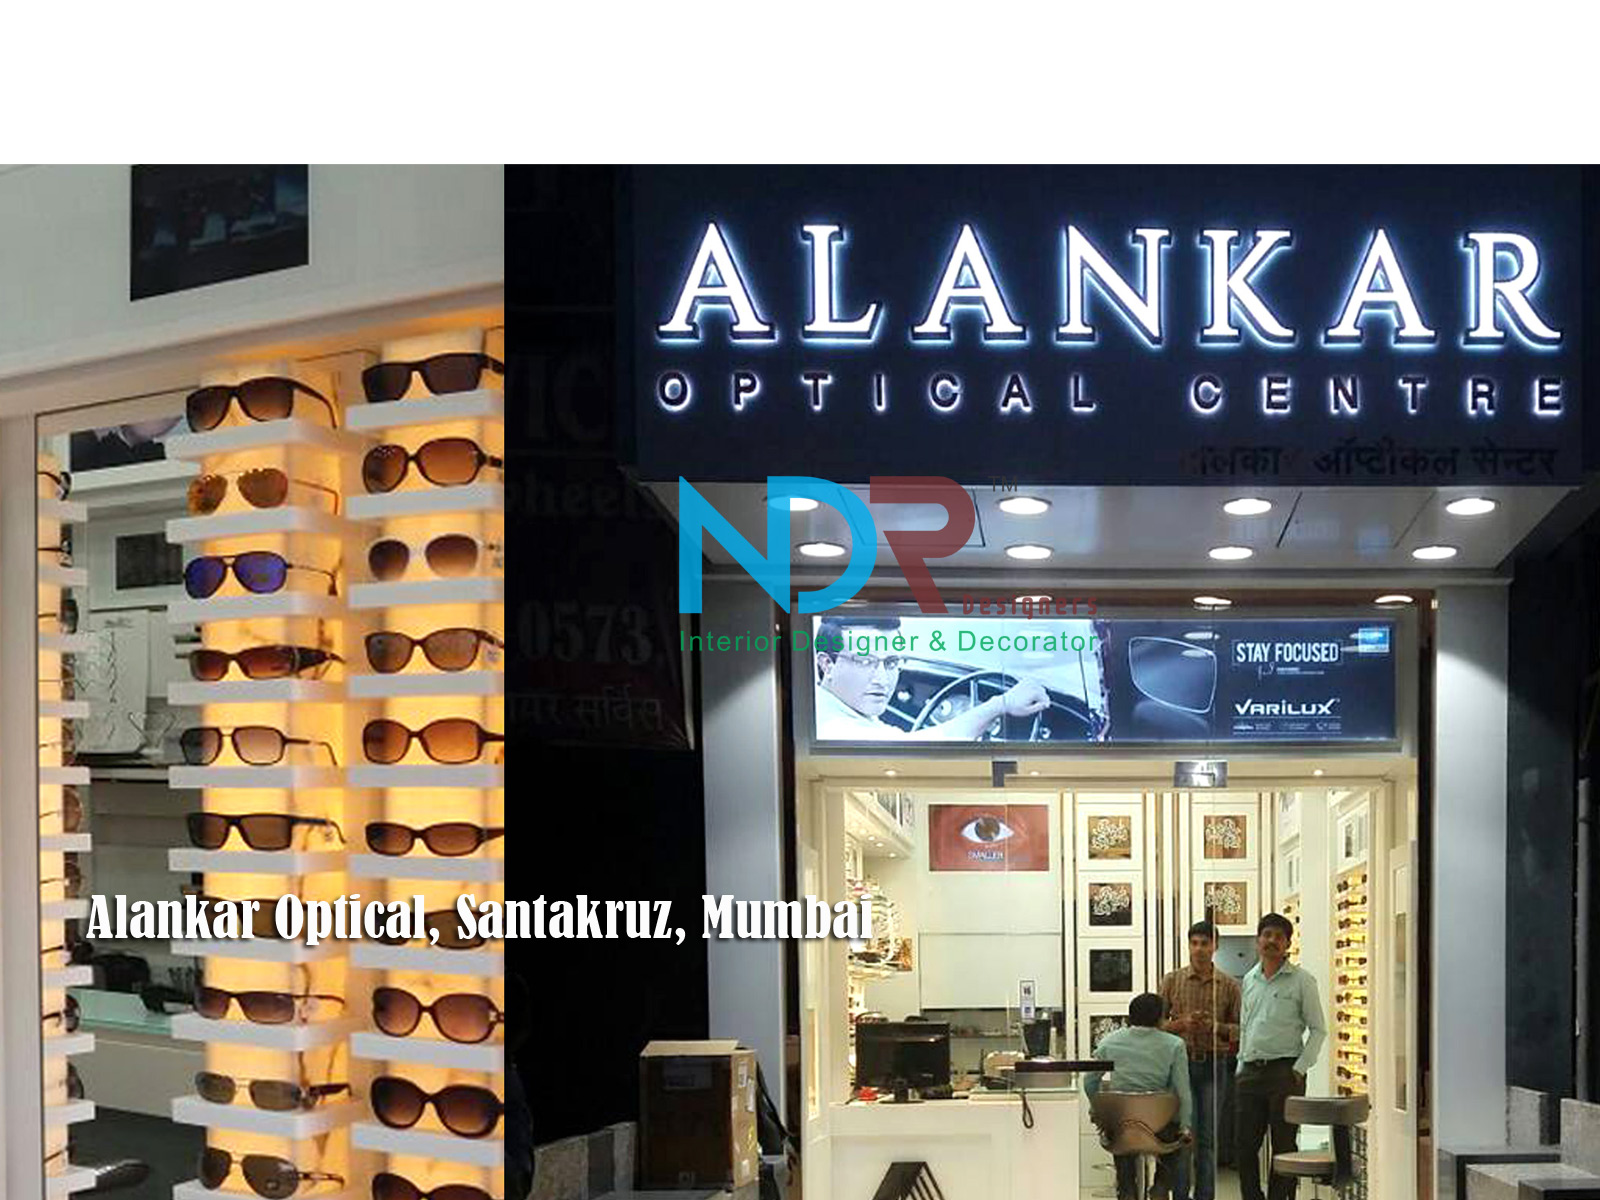 exhibition sall design  ndr designers. home · about us · services · optical showroom